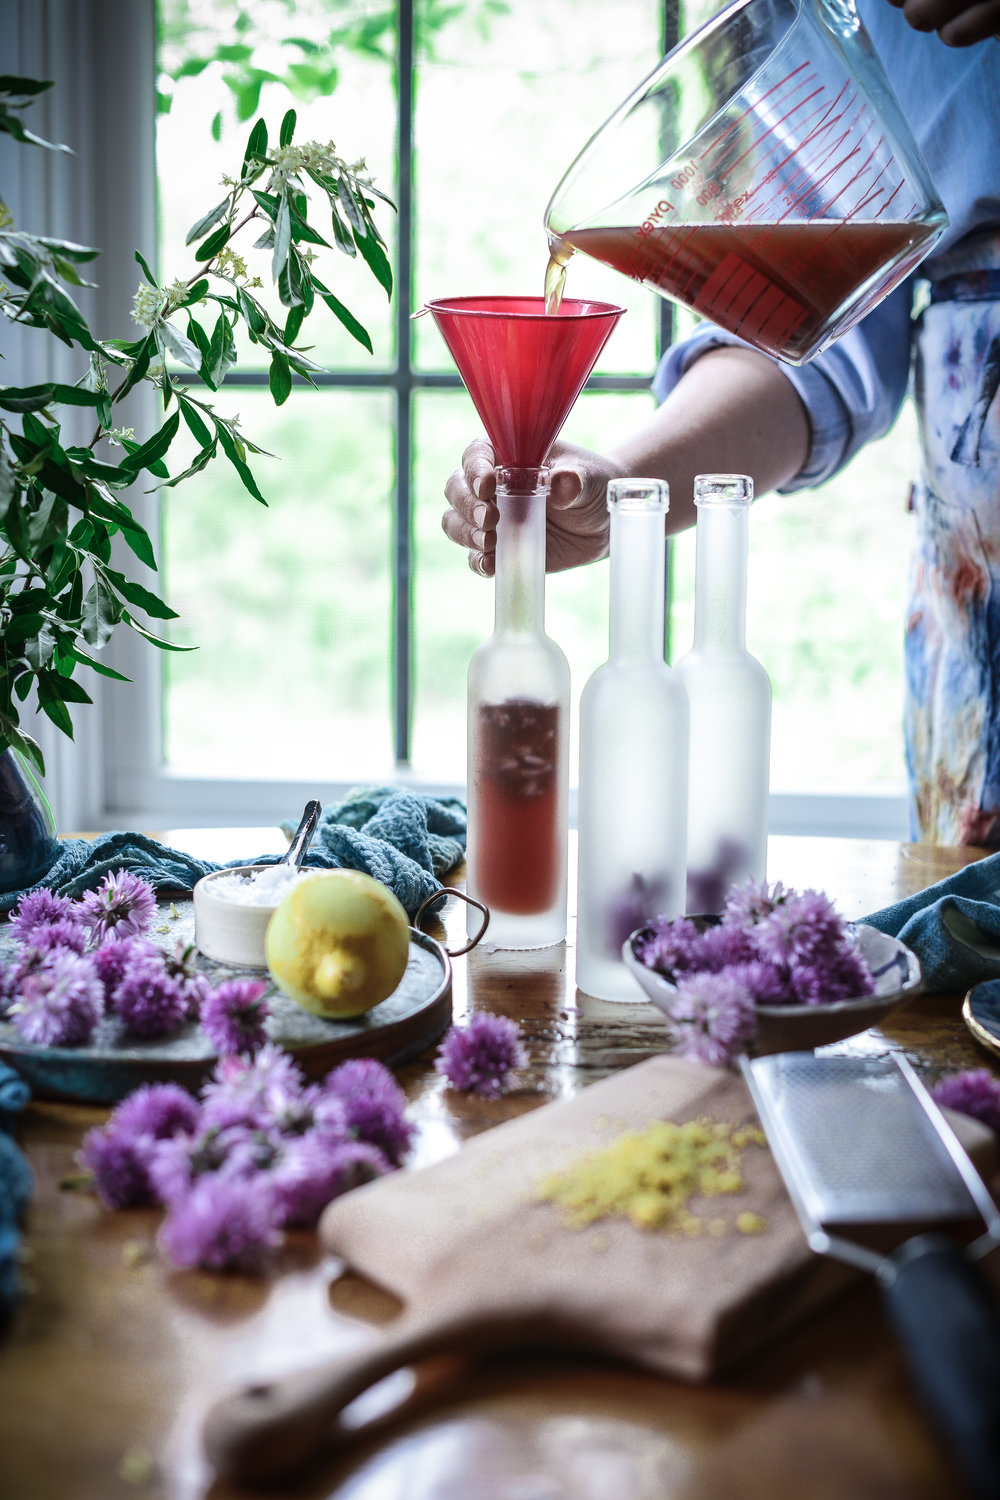 Fare Isle   3 Ways to Use Edible Chive Blossoms: Chive Blossom Vinegar, Finishing Salt & Cultured Cashew Cheese